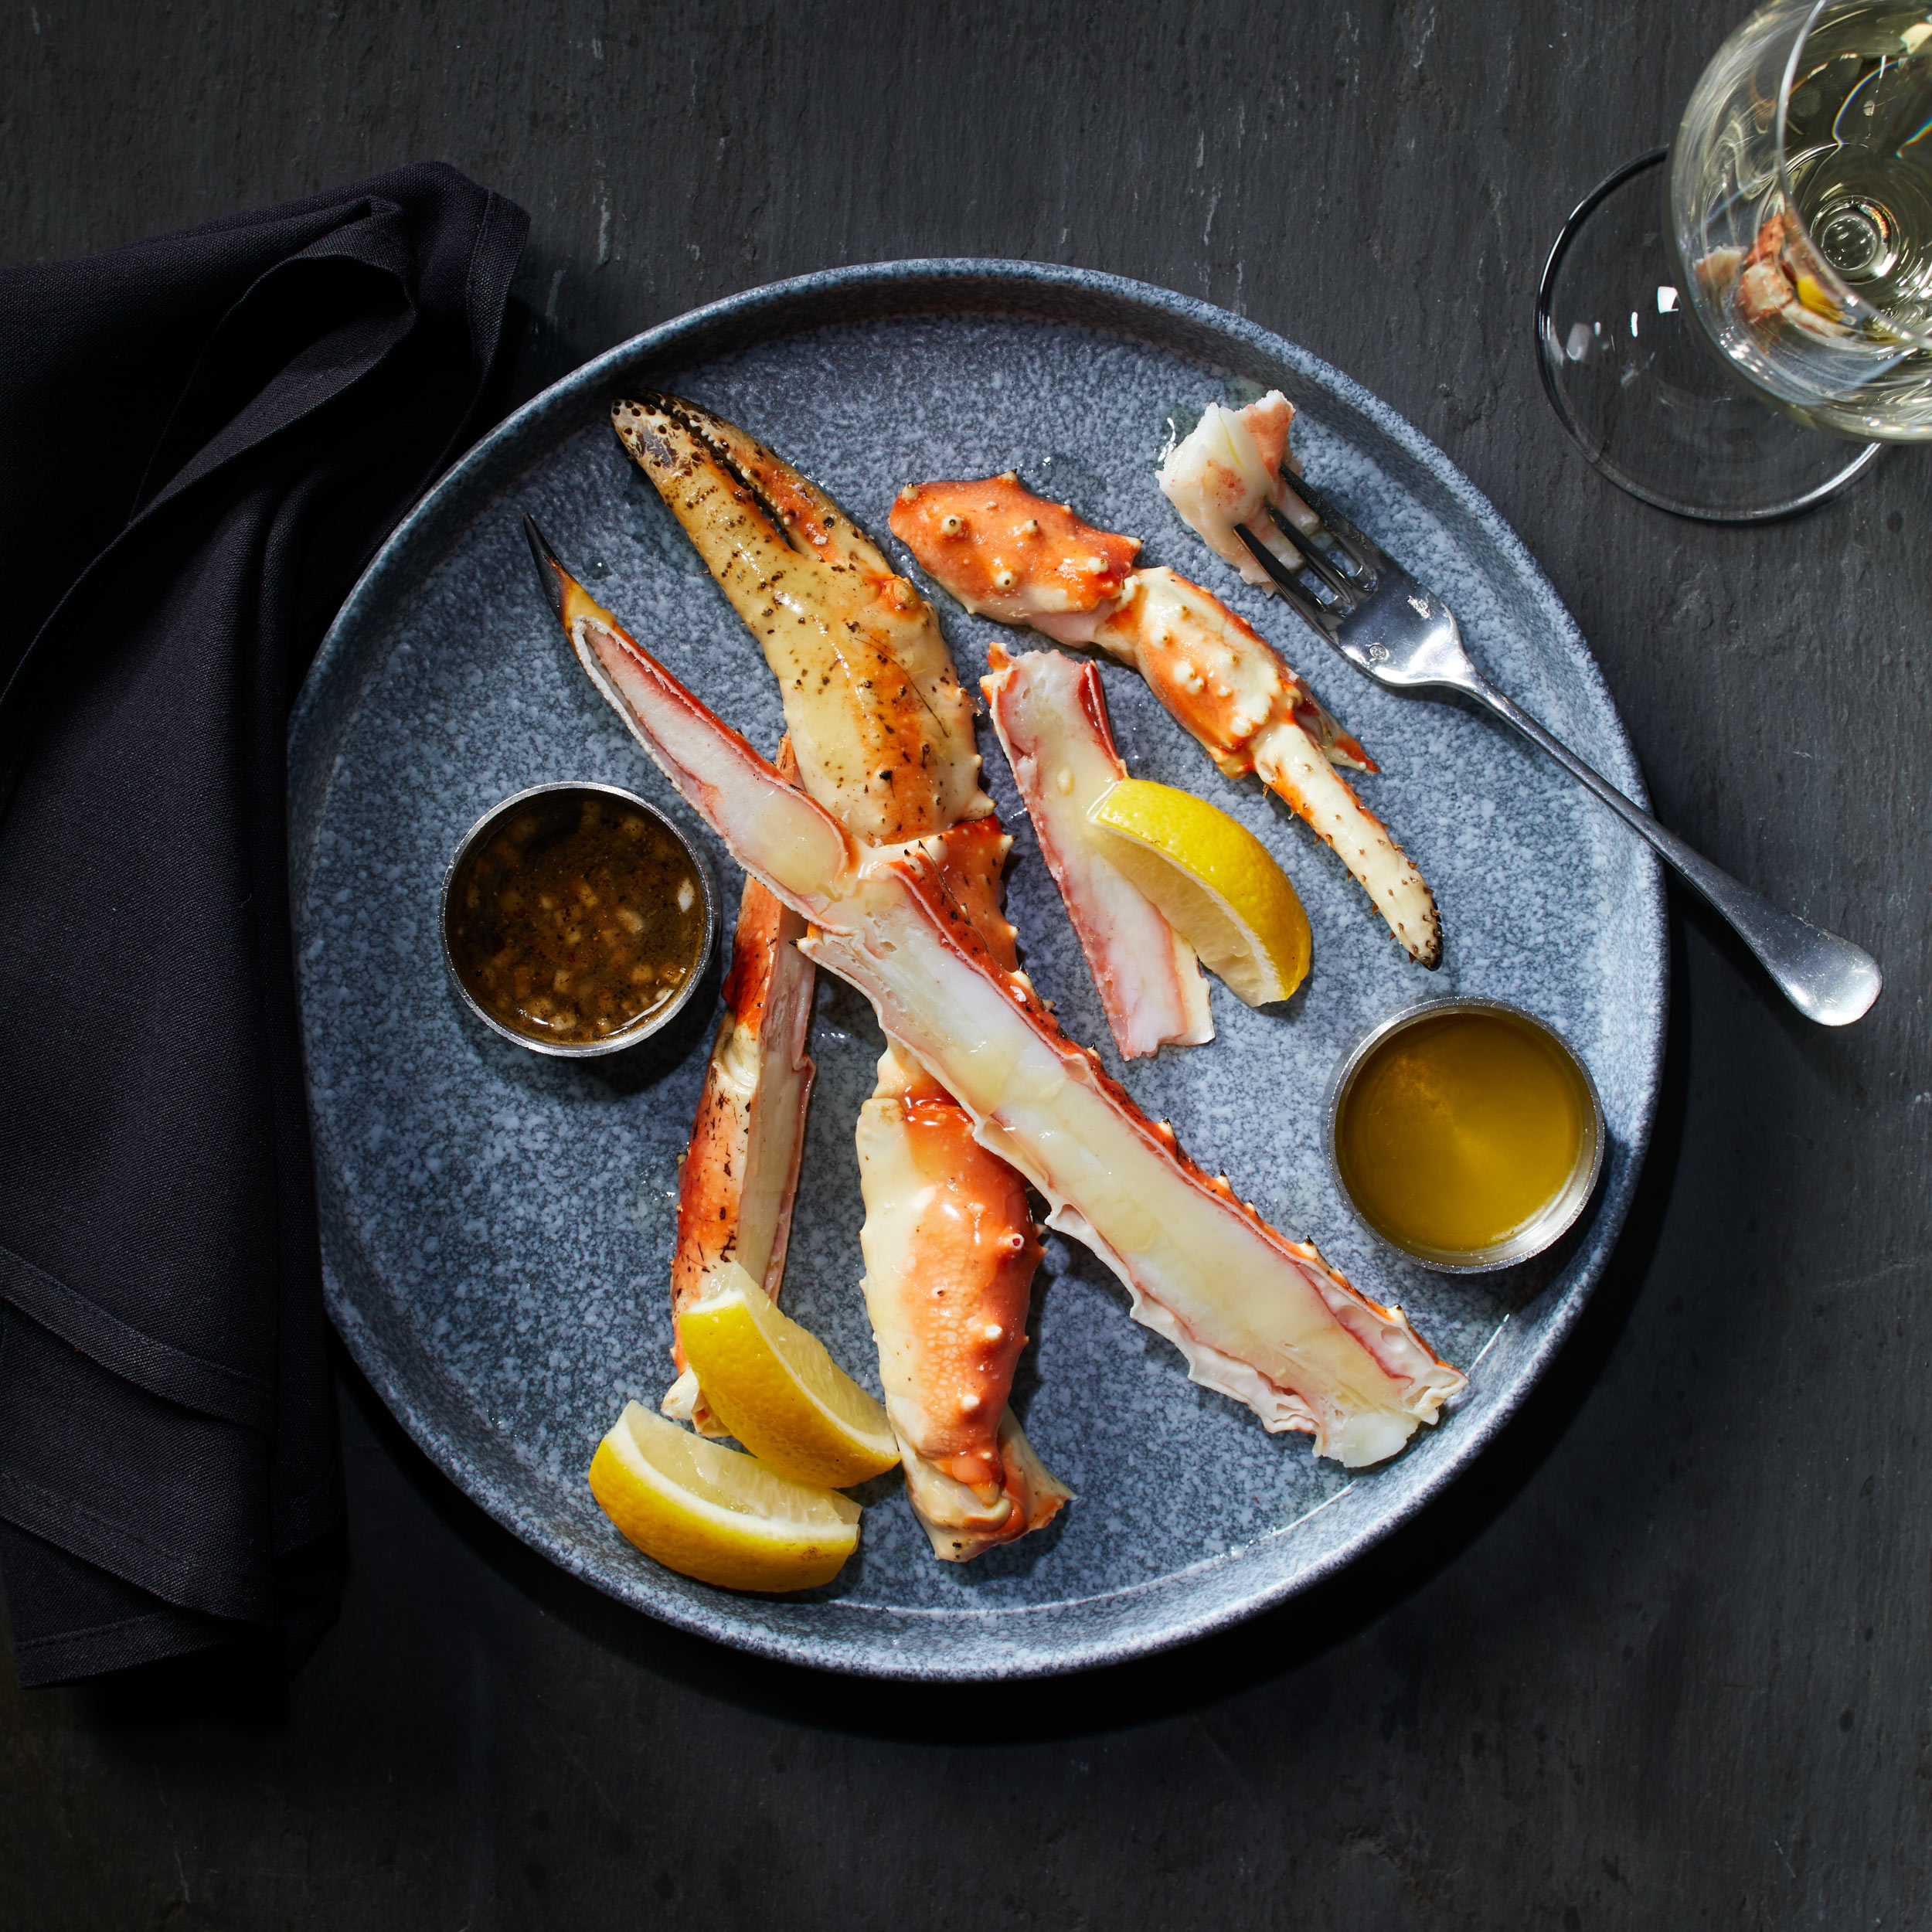 King Crab Legs photo by Chris Kessler Photography.  Chris Kessler is a freelance Photographer based in Milwaukee Wisconsin. Specializing in Food photography and portraiture.